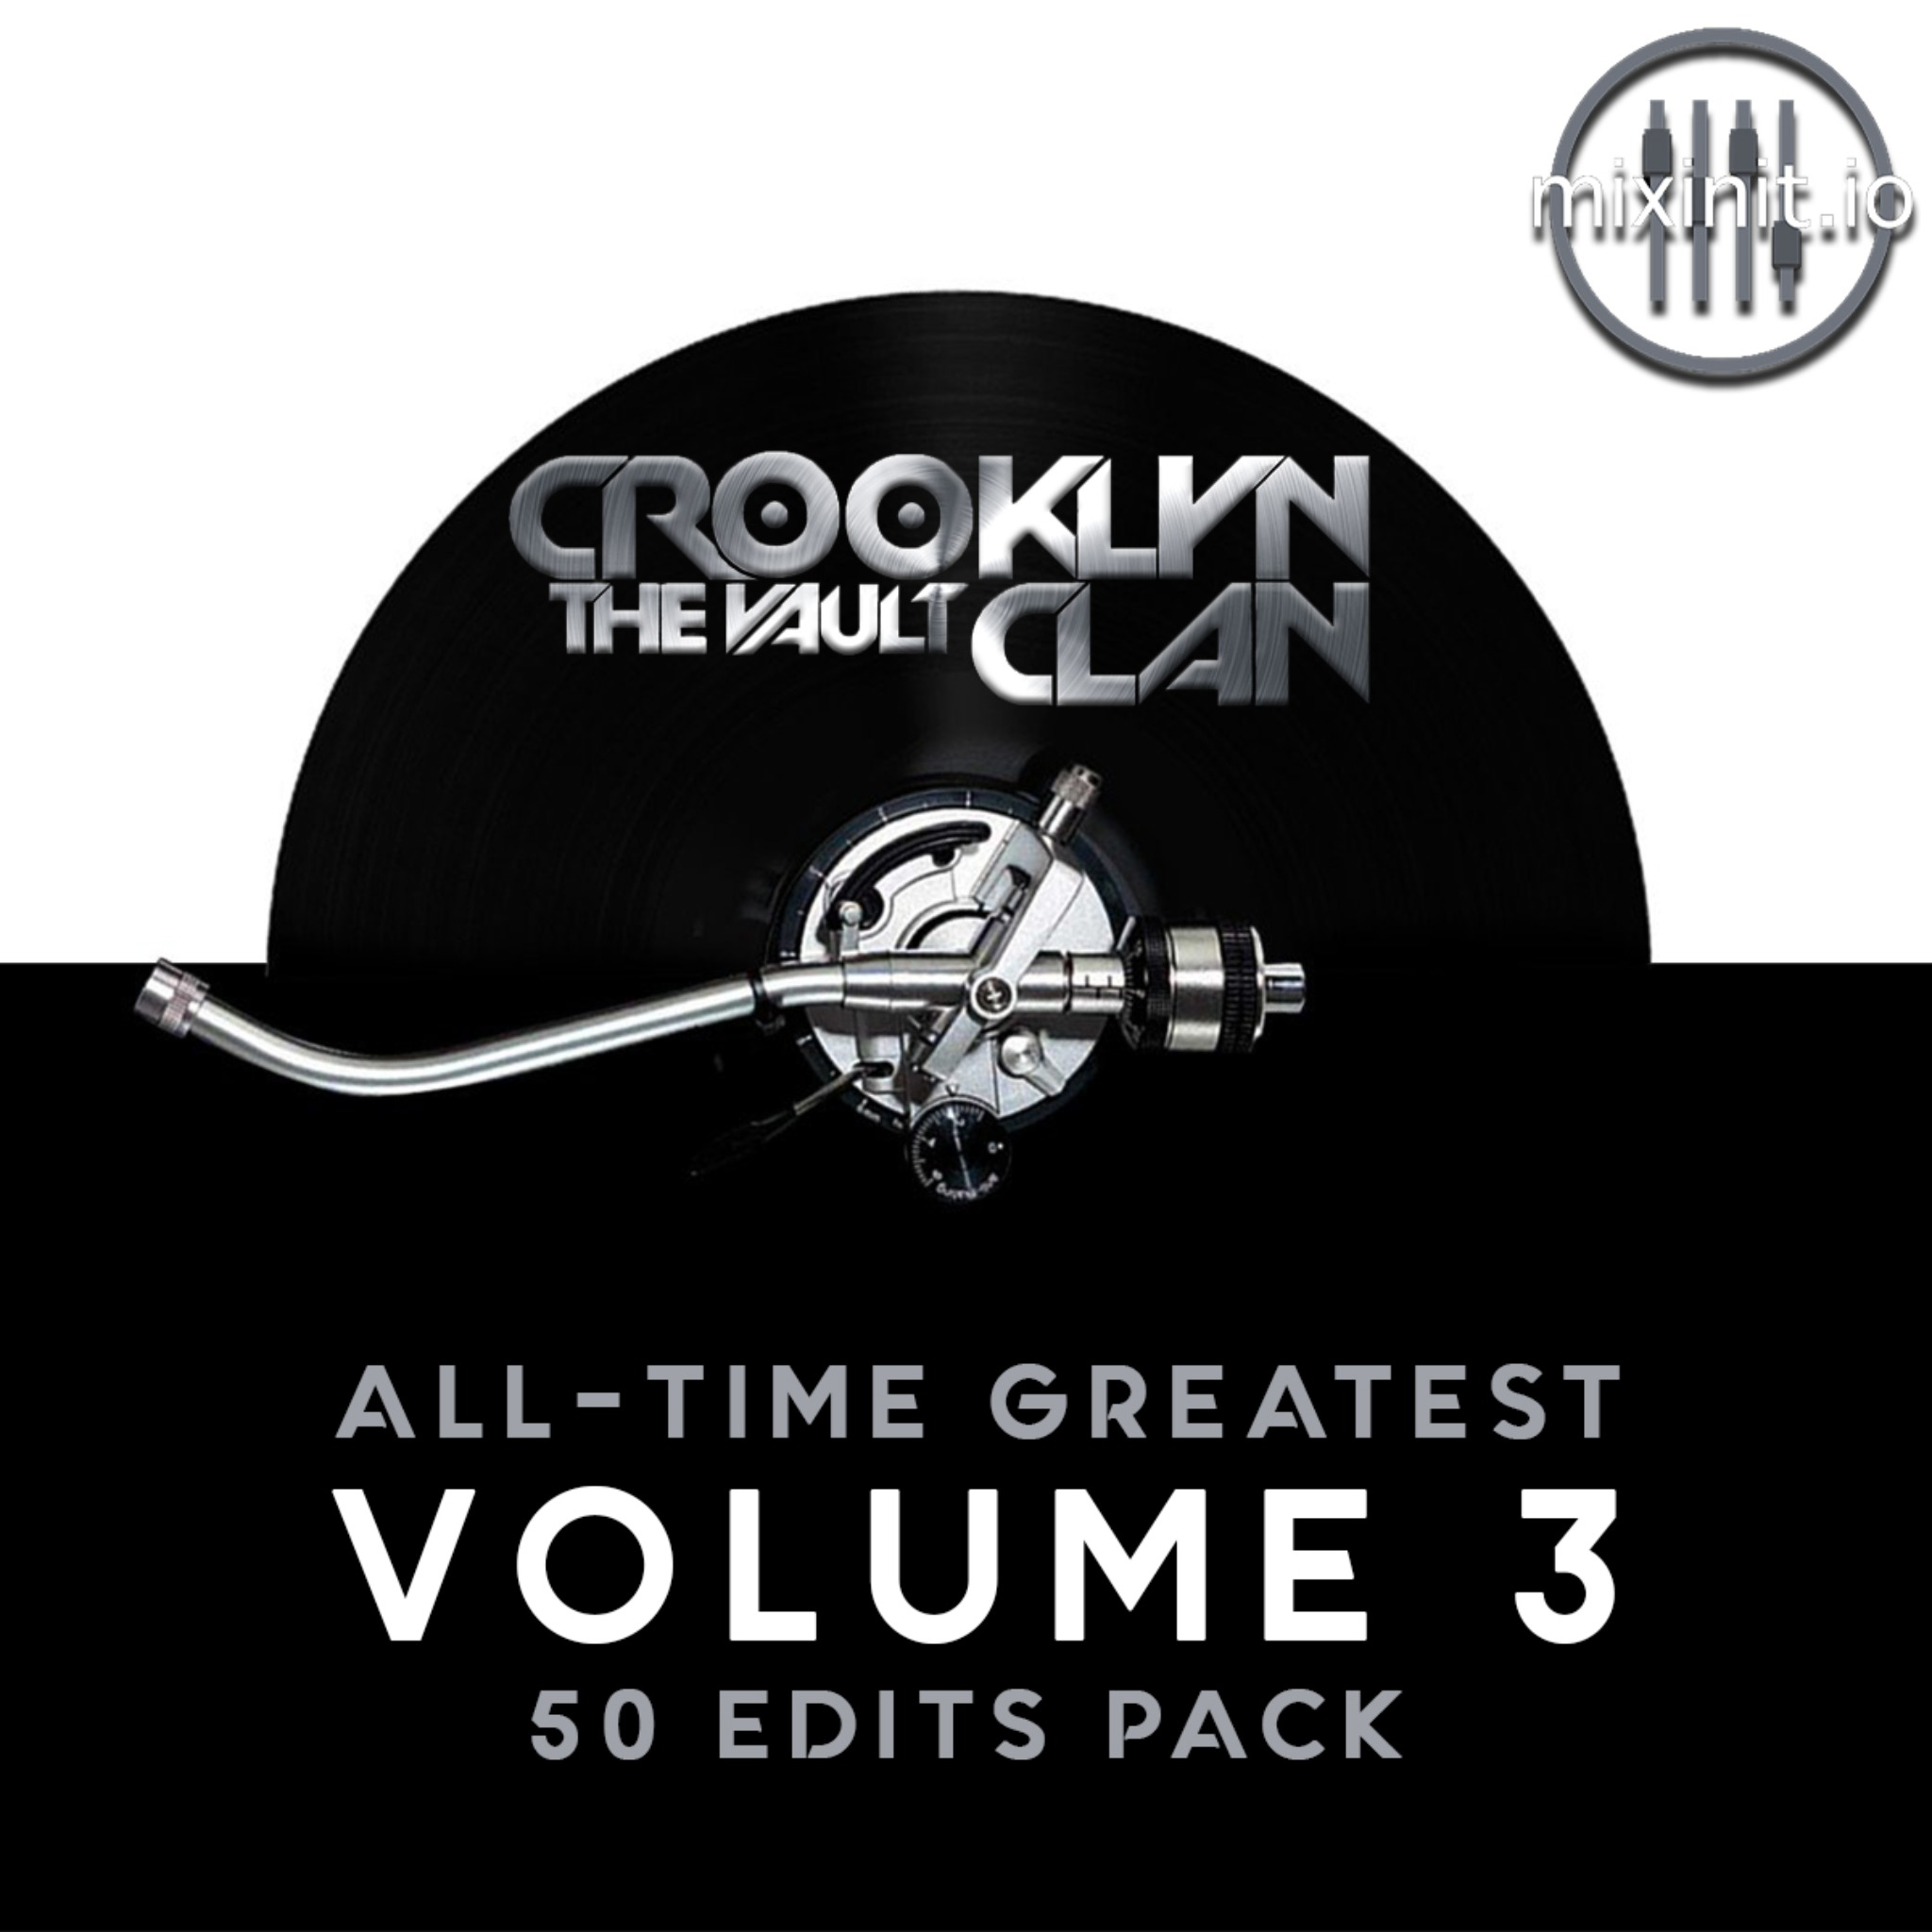 Best Of The Crooklyn Clan Vault Vol. 3 (Various Editors)